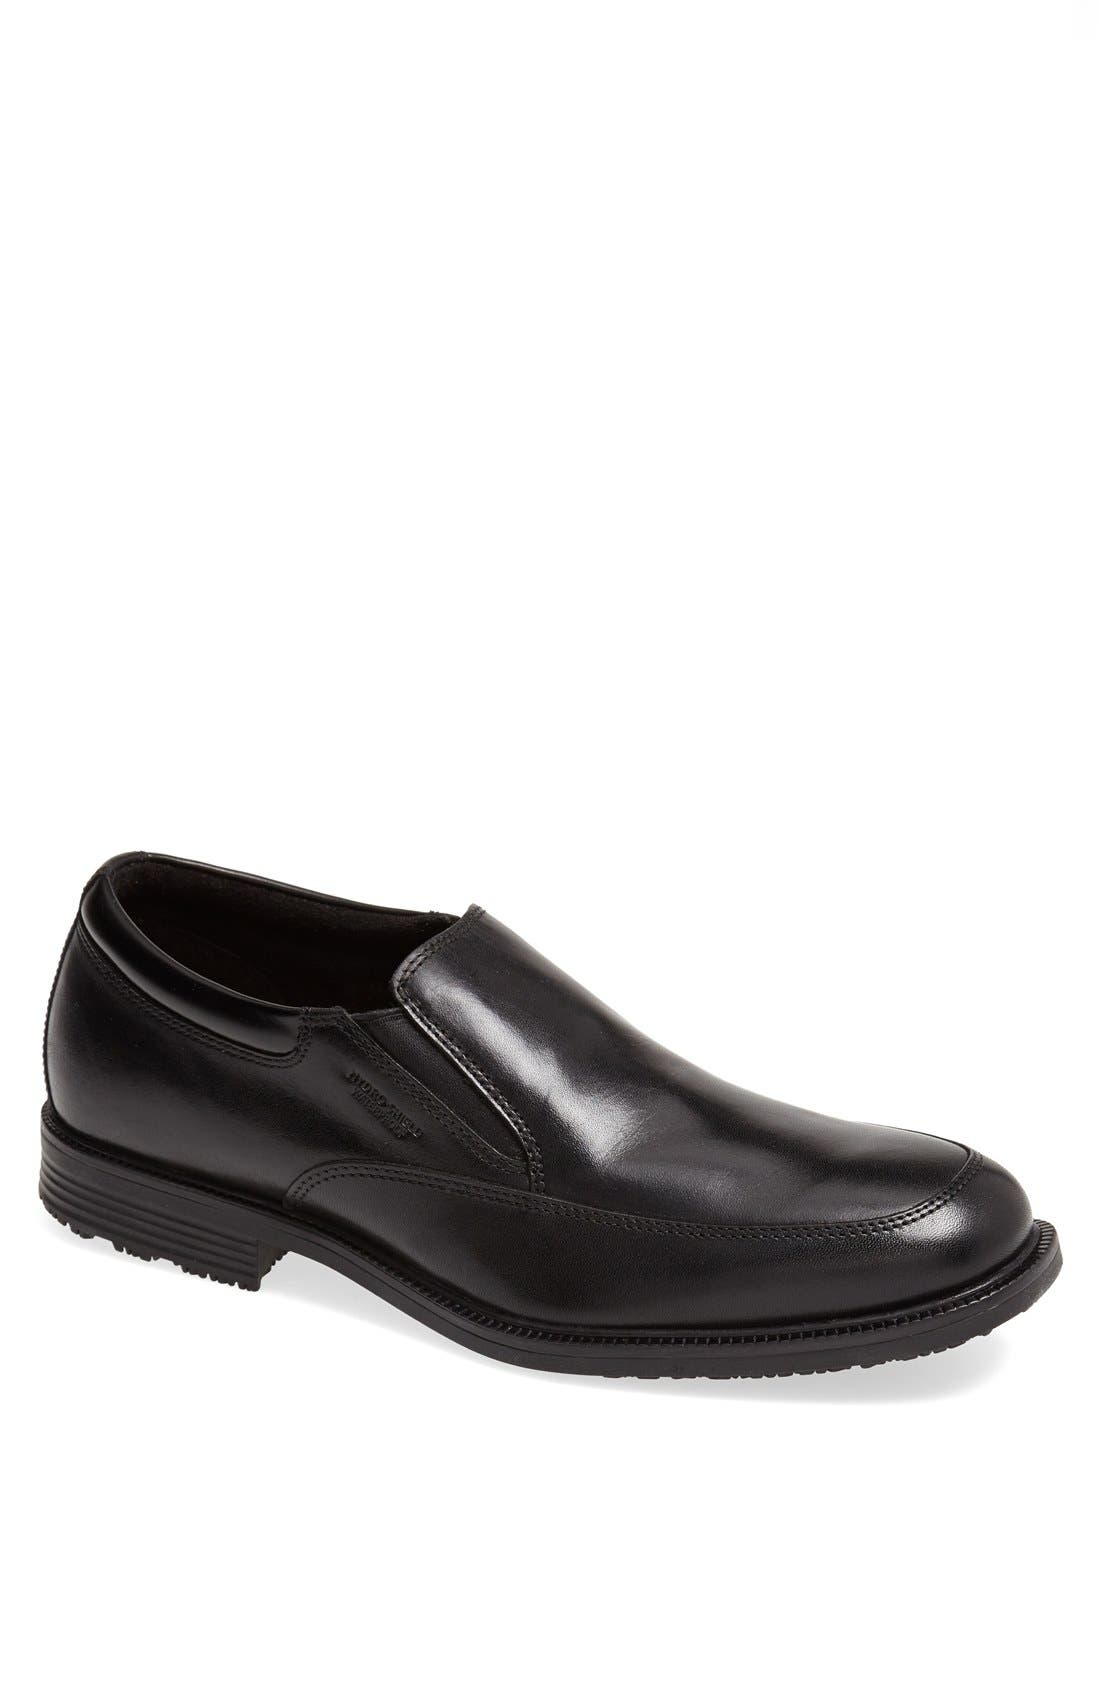 'Essential Details' Waterproof Loafer,                             Main thumbnail 1, color,